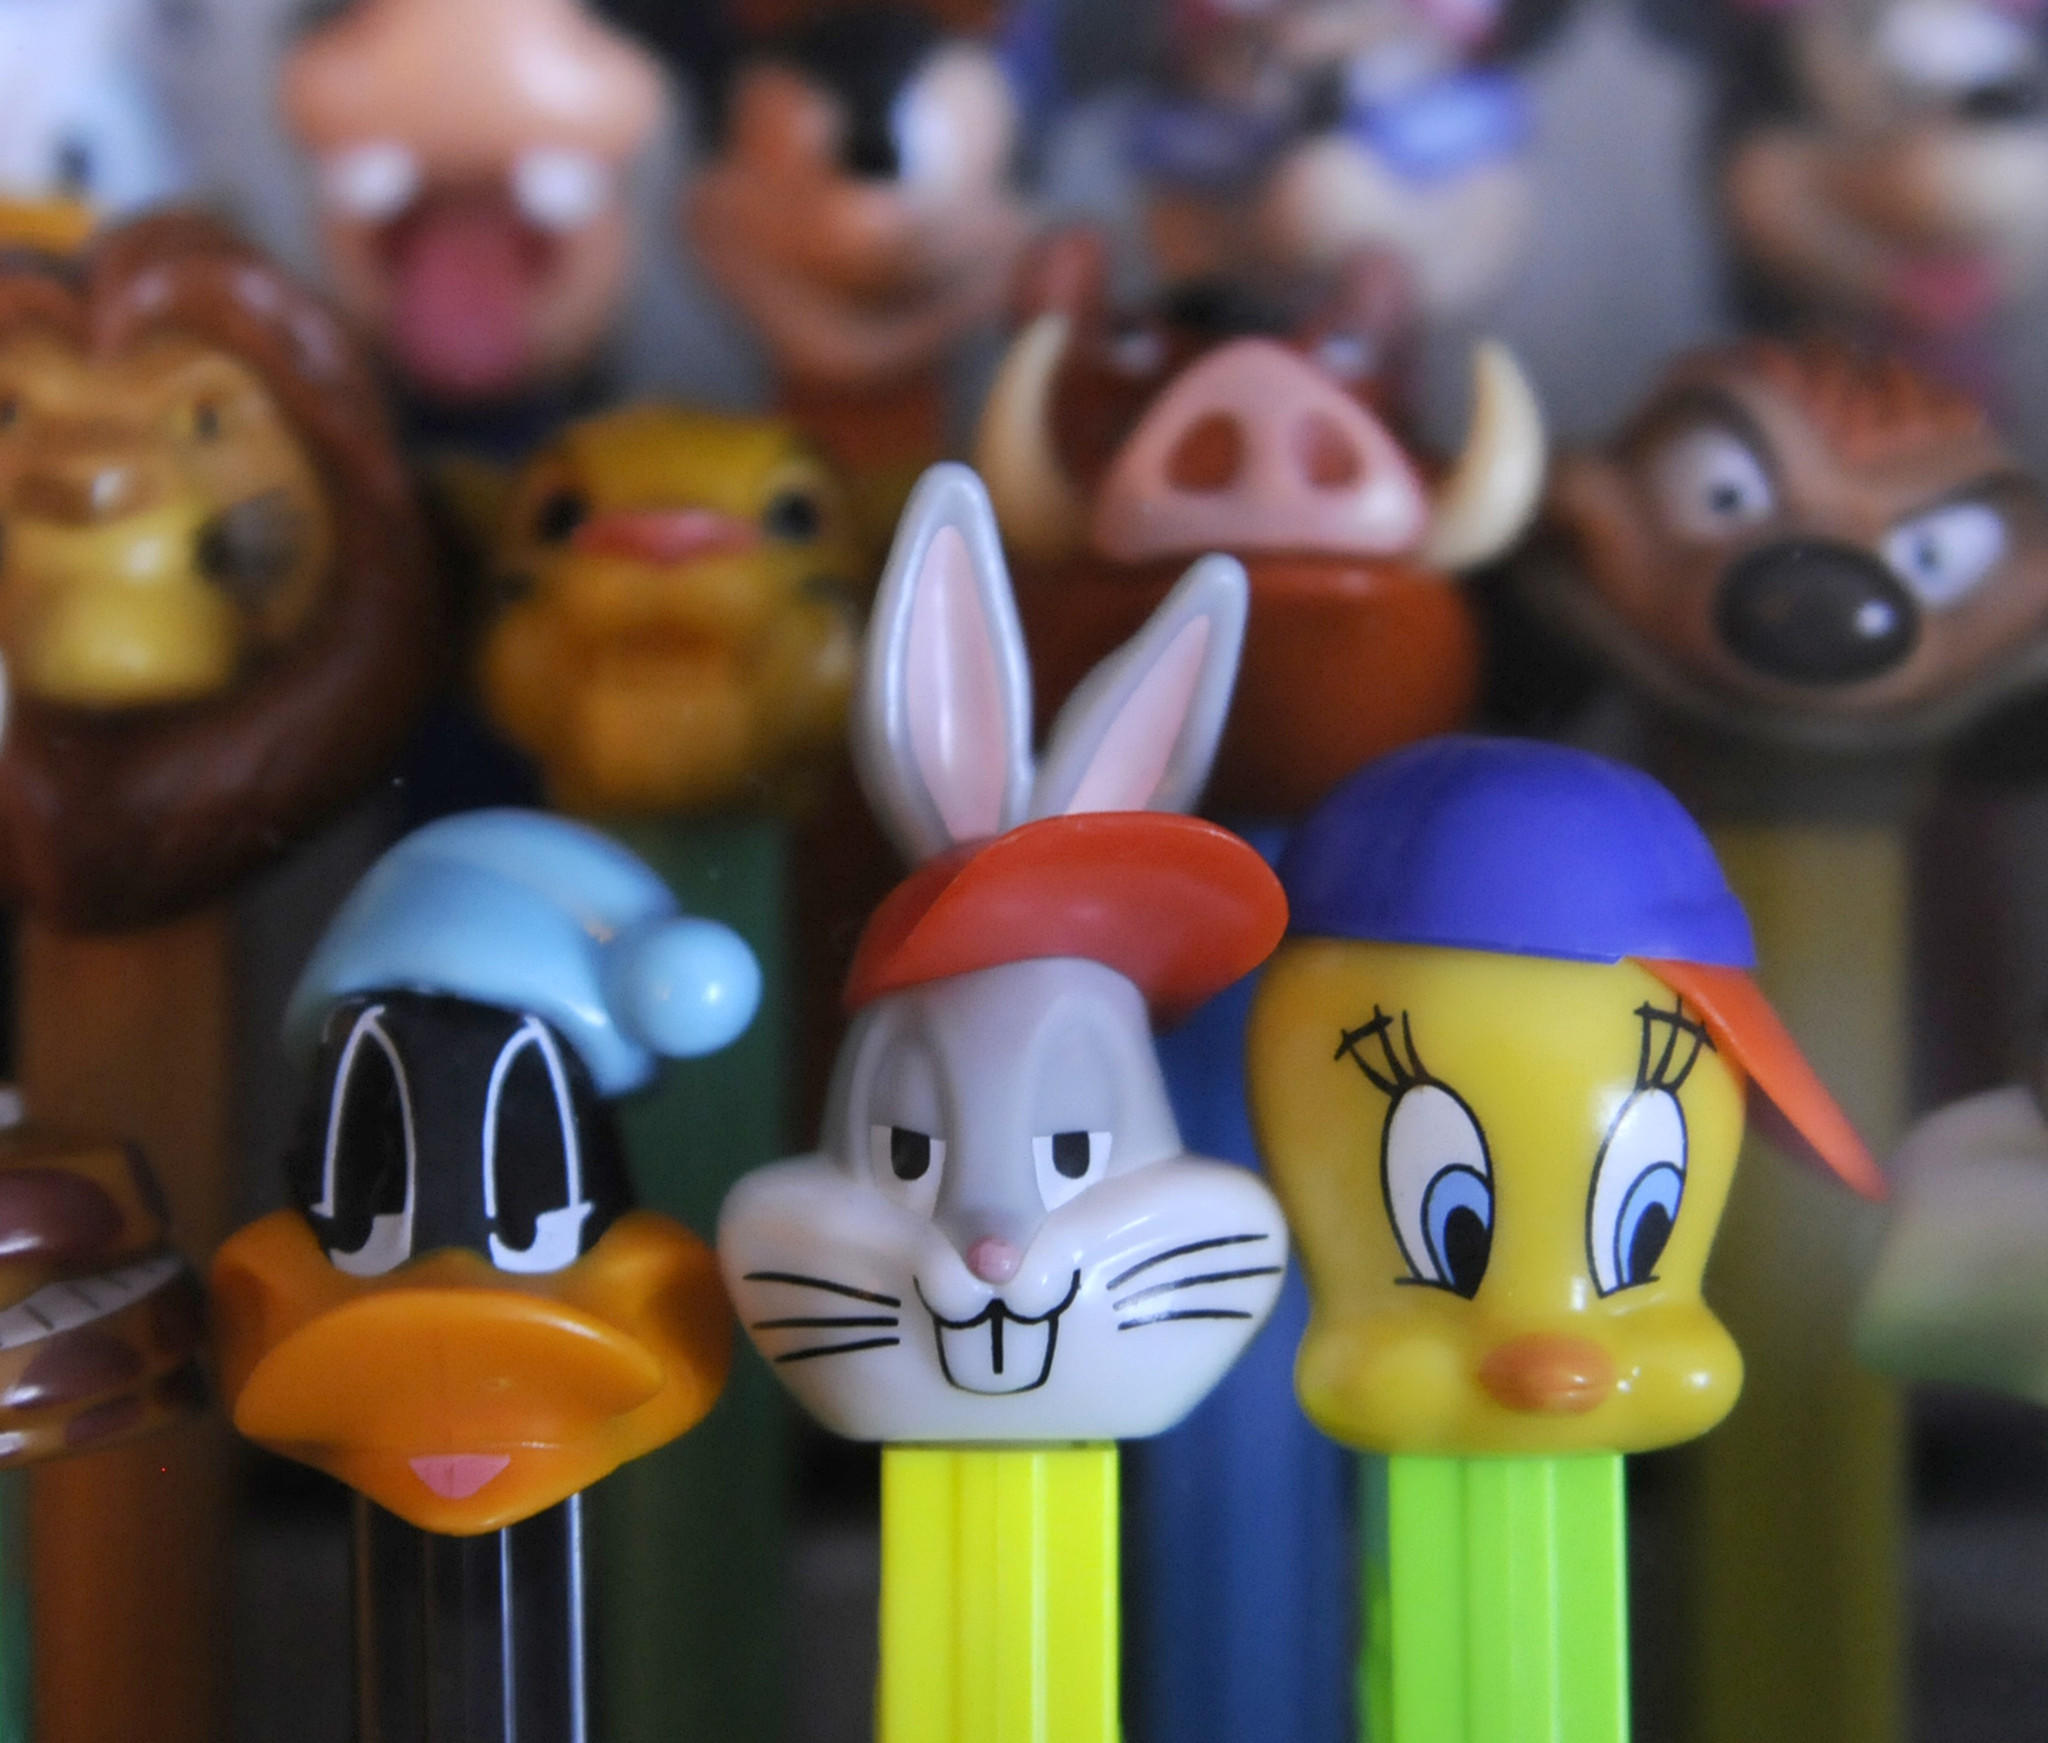 Pez is headquartered in Orange, and Pez dispensers make great souvenirs.